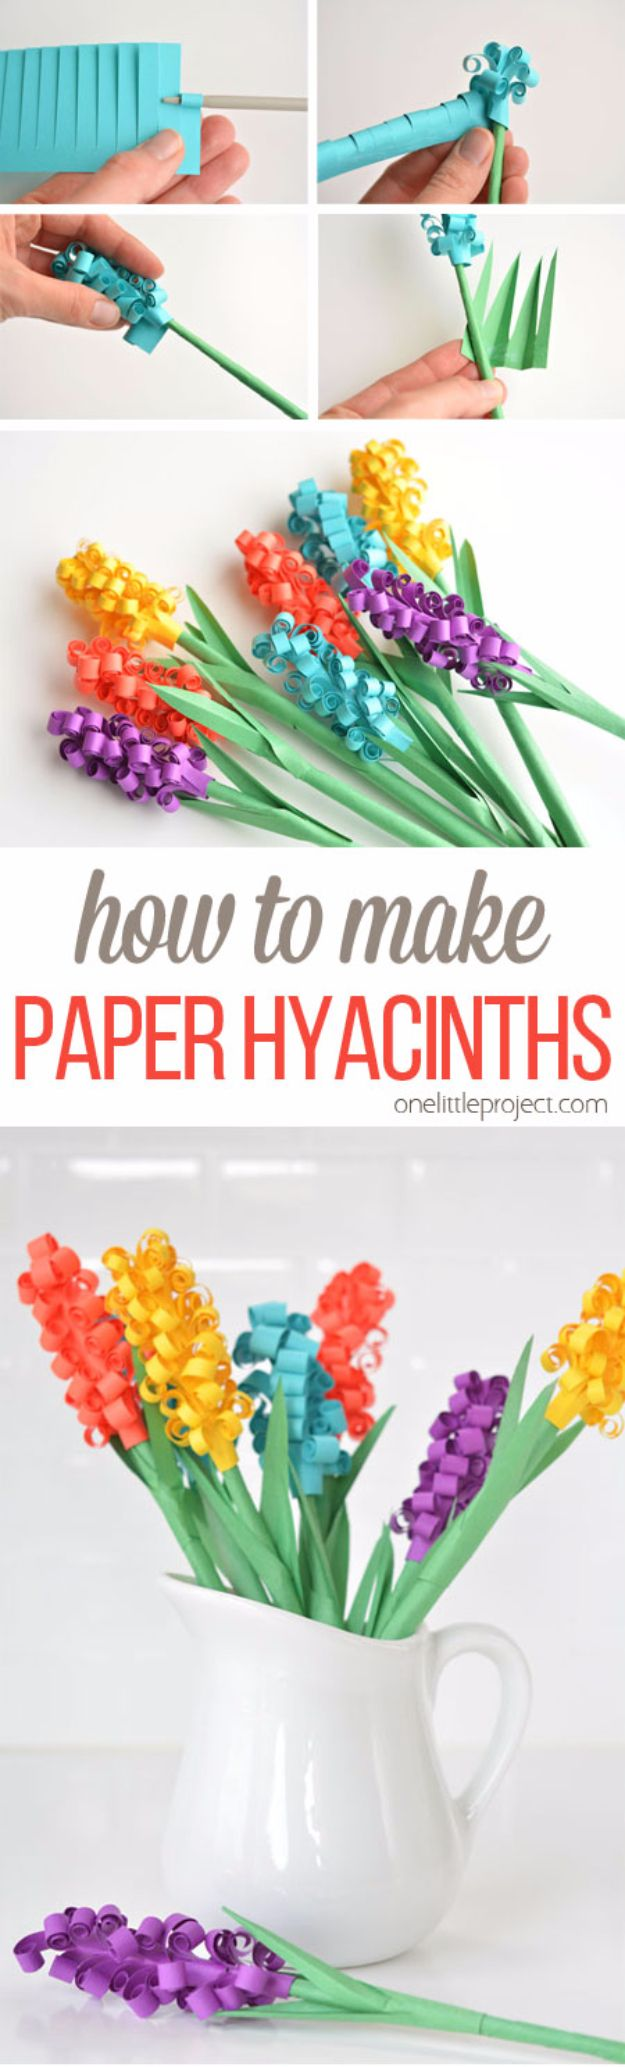 41 Easiest DIY Projects Ever - Paper Hyacinth Flowers - Easy DIY Crafts and  Projects -